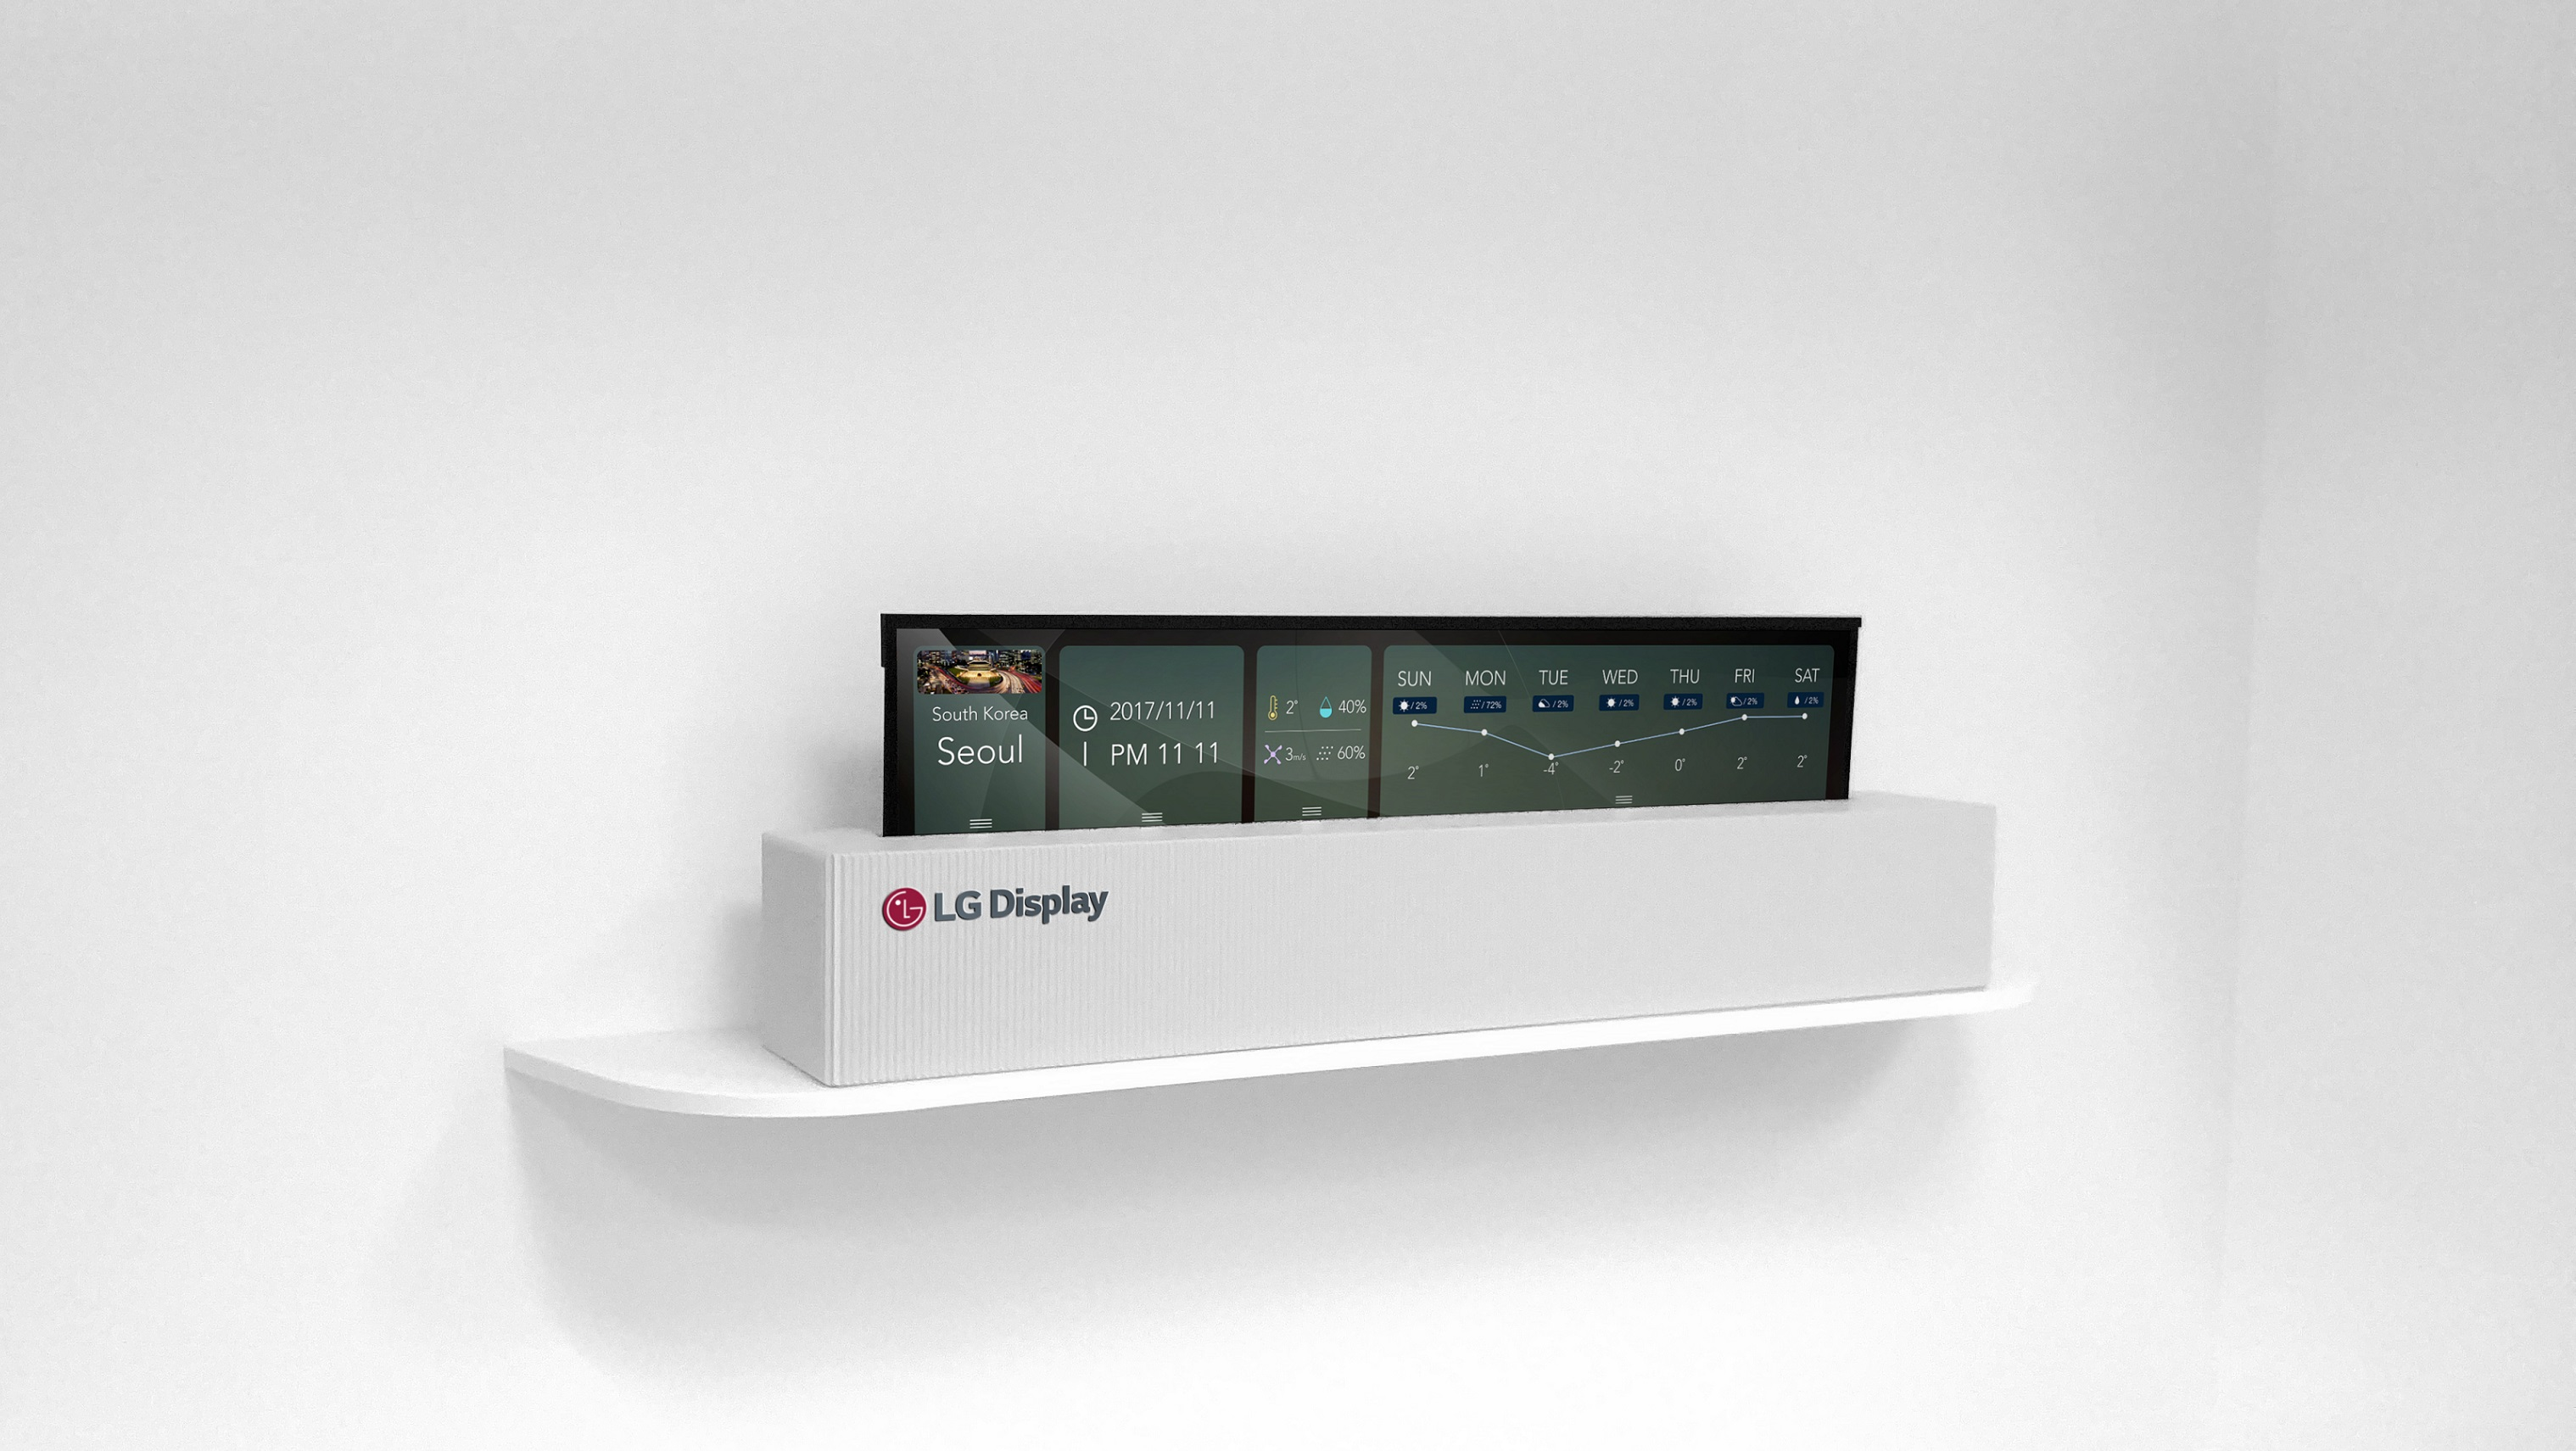 LG Display has made a 65-inch rollable OLED TV